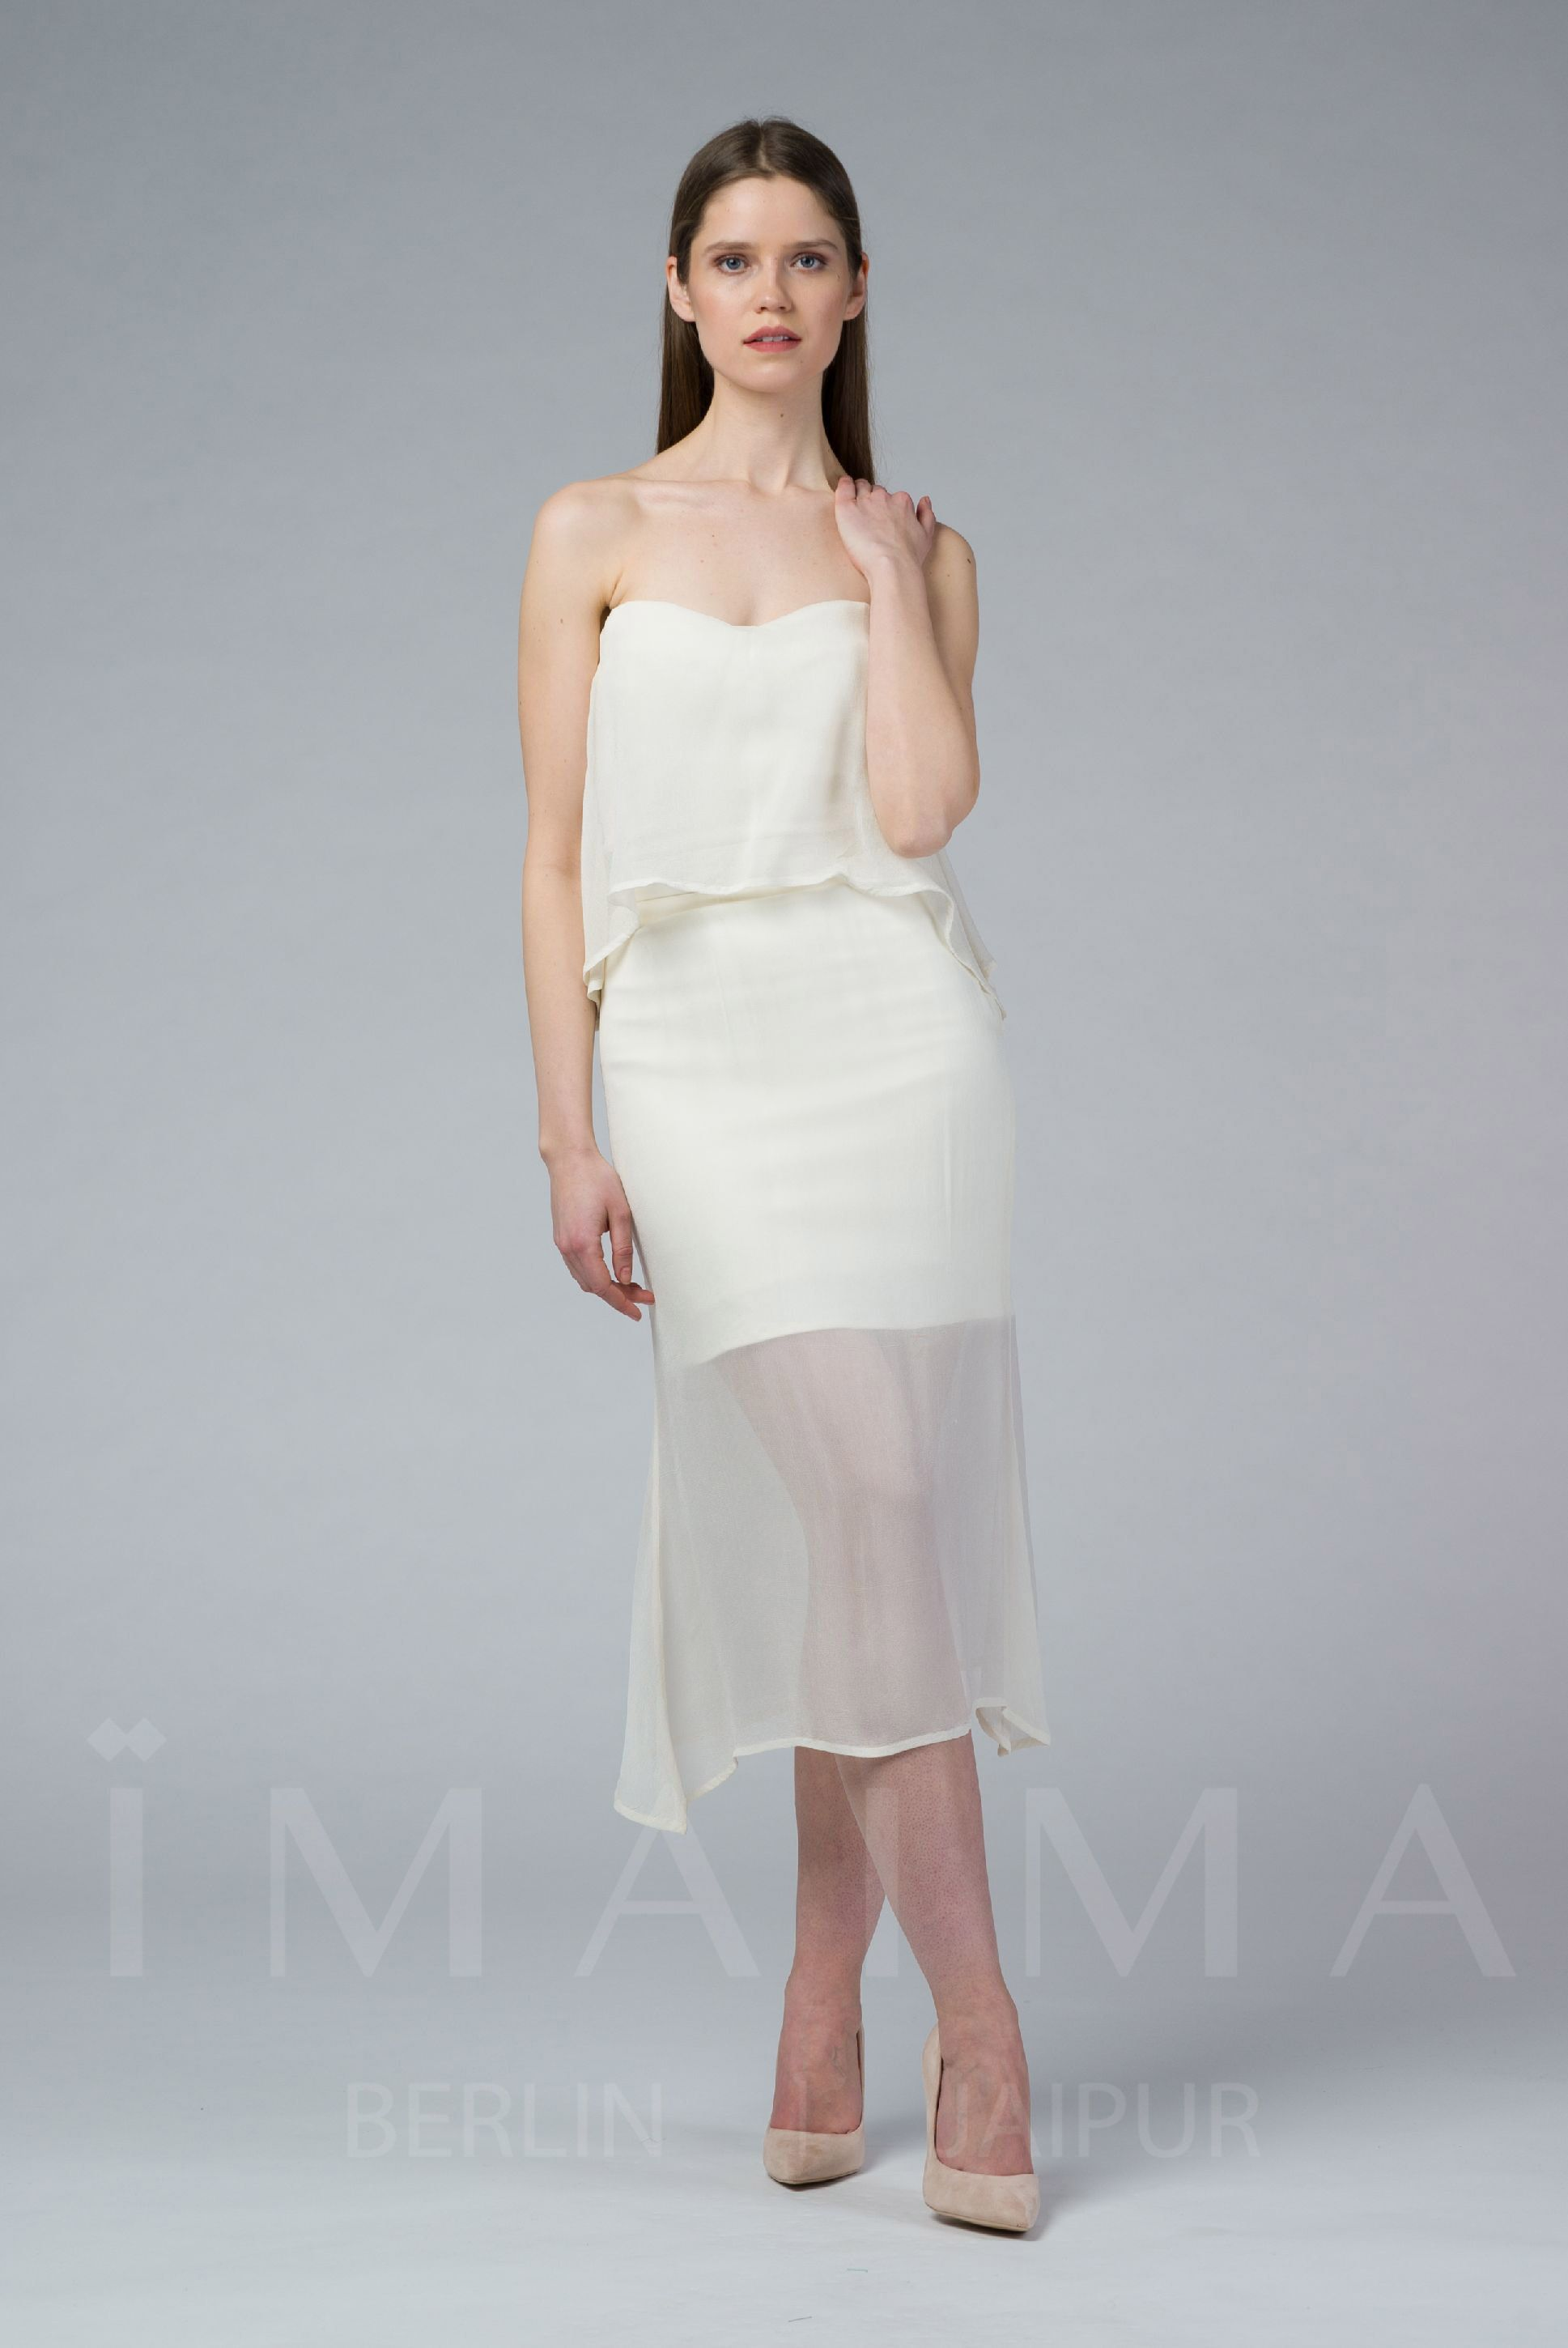 FAARIYA is a stretchable mermaid marshmallow skirt. It is a close-cut bodycon fit with a high-rise waist, a concealed zip at the side. It is fully-lined. FAARIYA is best styled with the DONYA top.